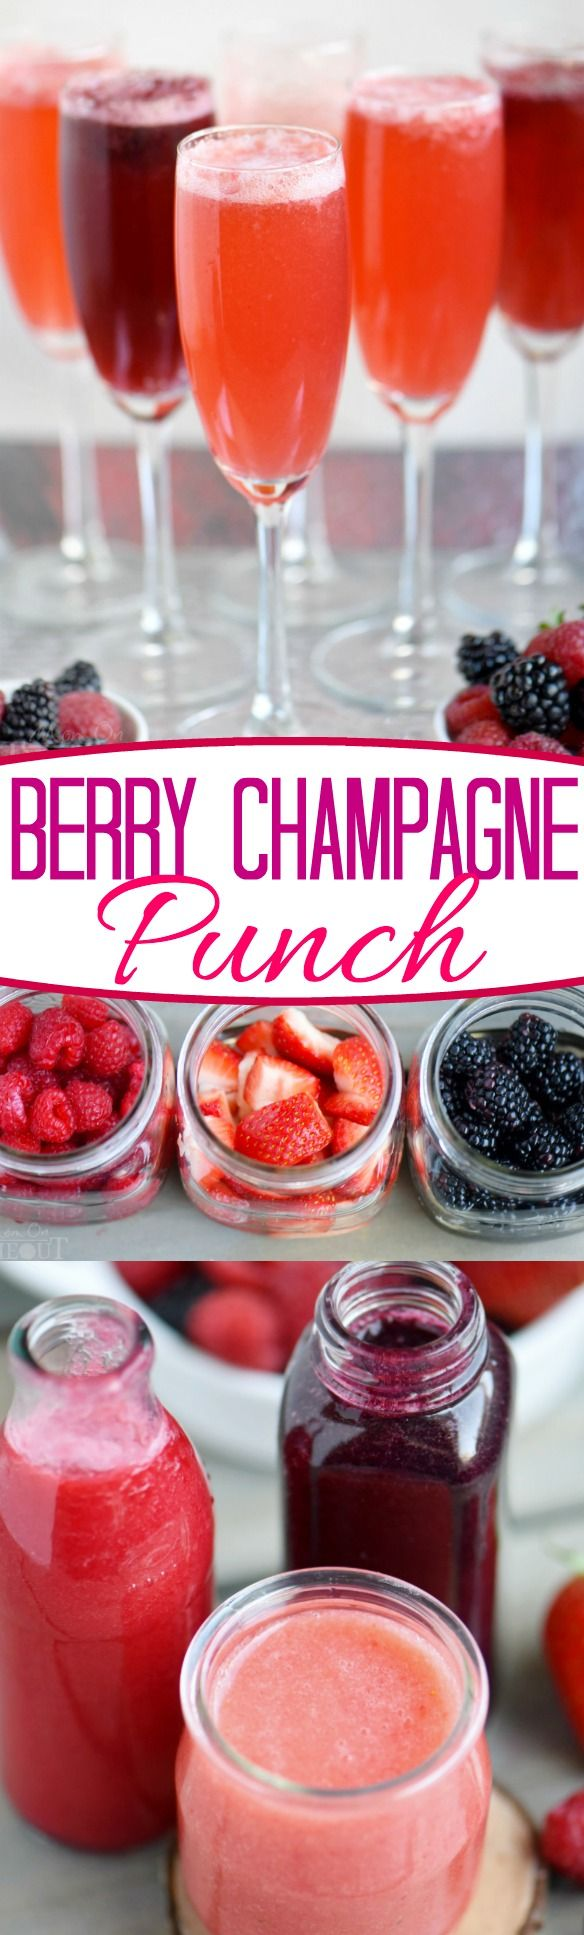 http://tipsalud.com This Berry Champagne Punch is the perfect way to kick off New Year's Eve! This punch is super easy to prepare and is made with fresh berries and champagne or sparkling wine. Perfect for Valentine's Day, Easter brunch and Mother's Day too! // Mom On Timeout